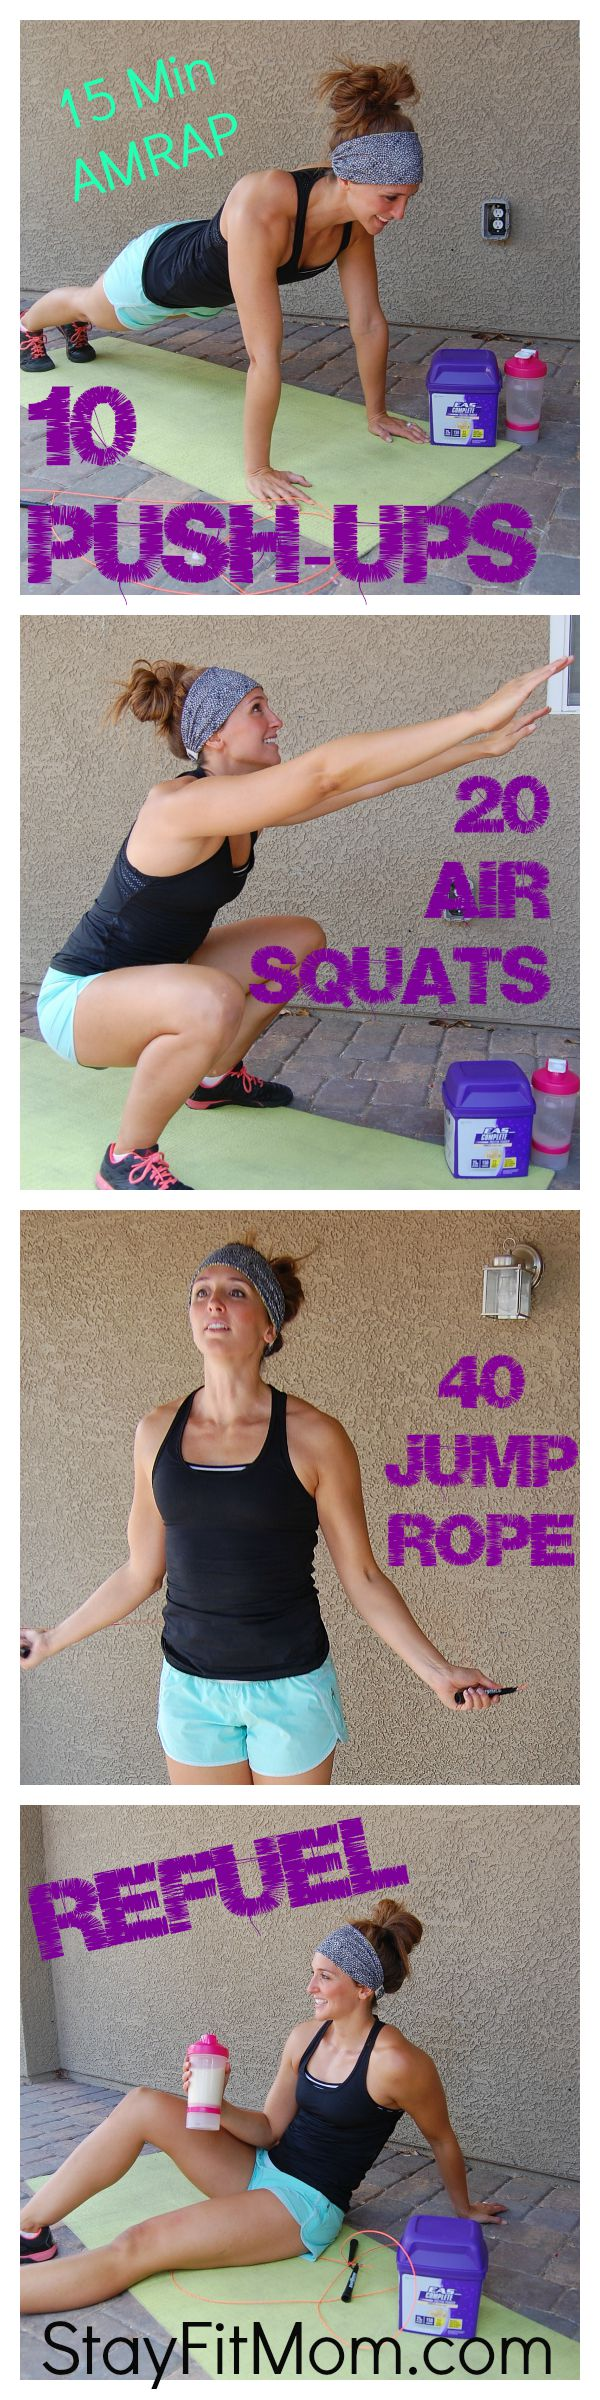 Love these at home workouts from Stayfitmom.com!